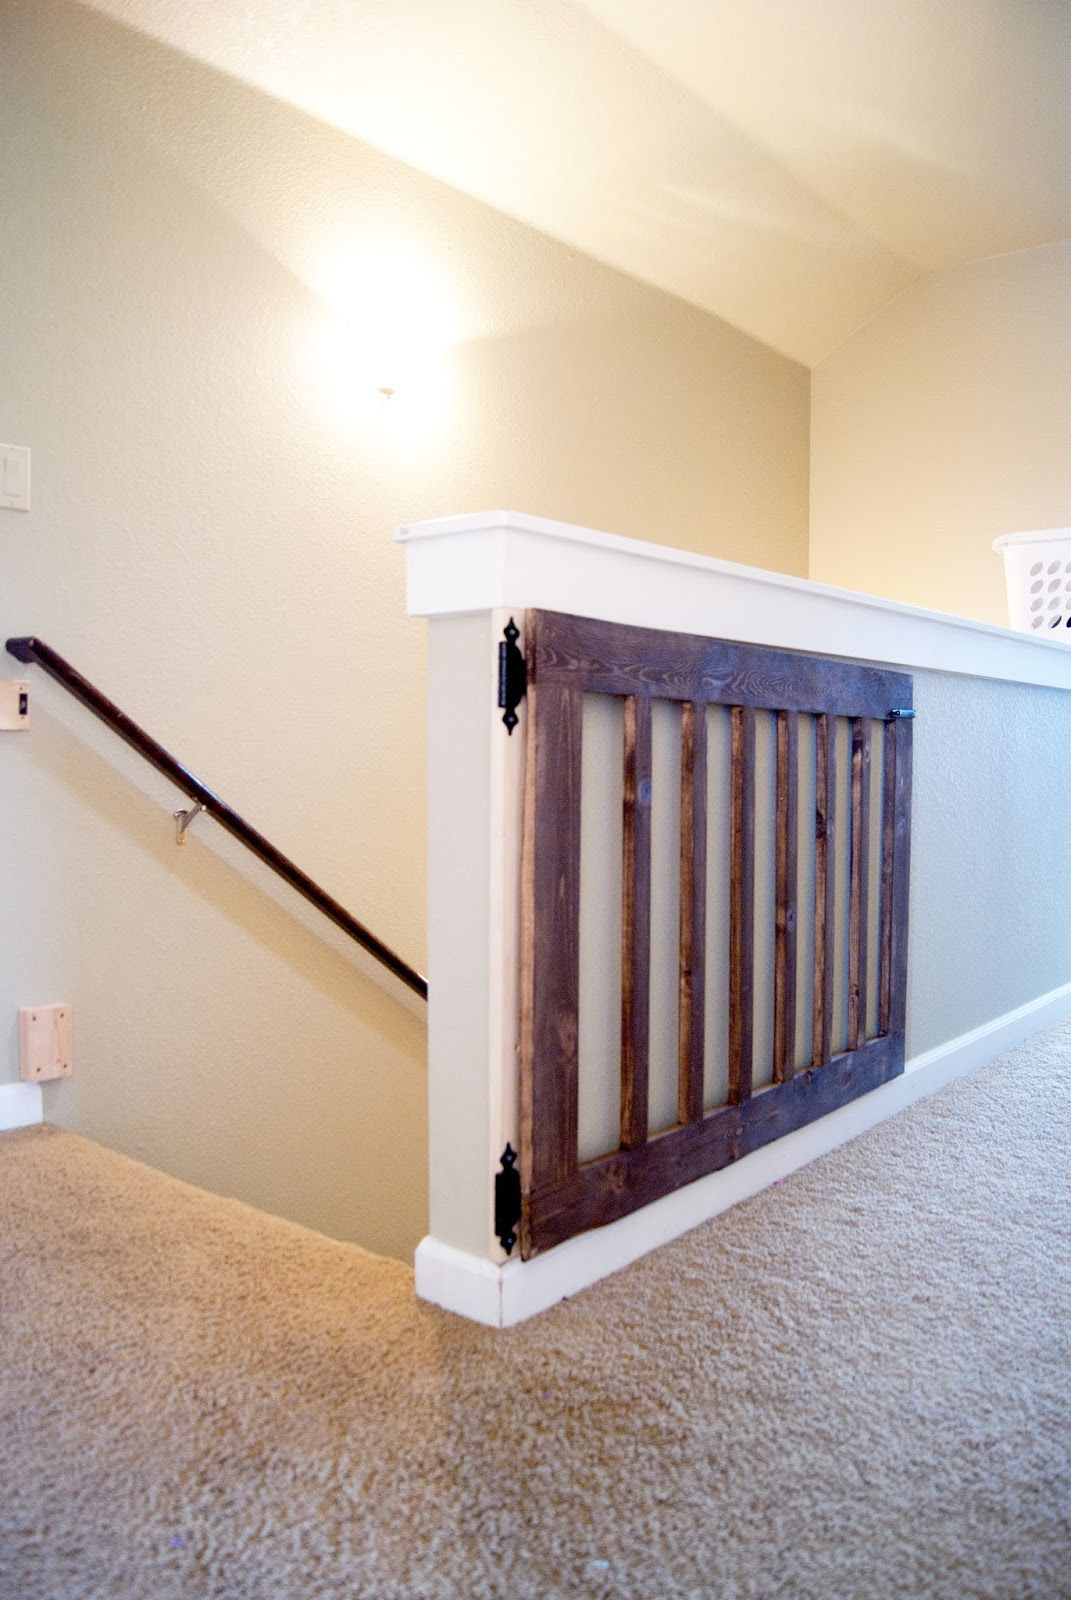 Custom Baby Gate Future Home Ideas Diy Baby Gate Diy